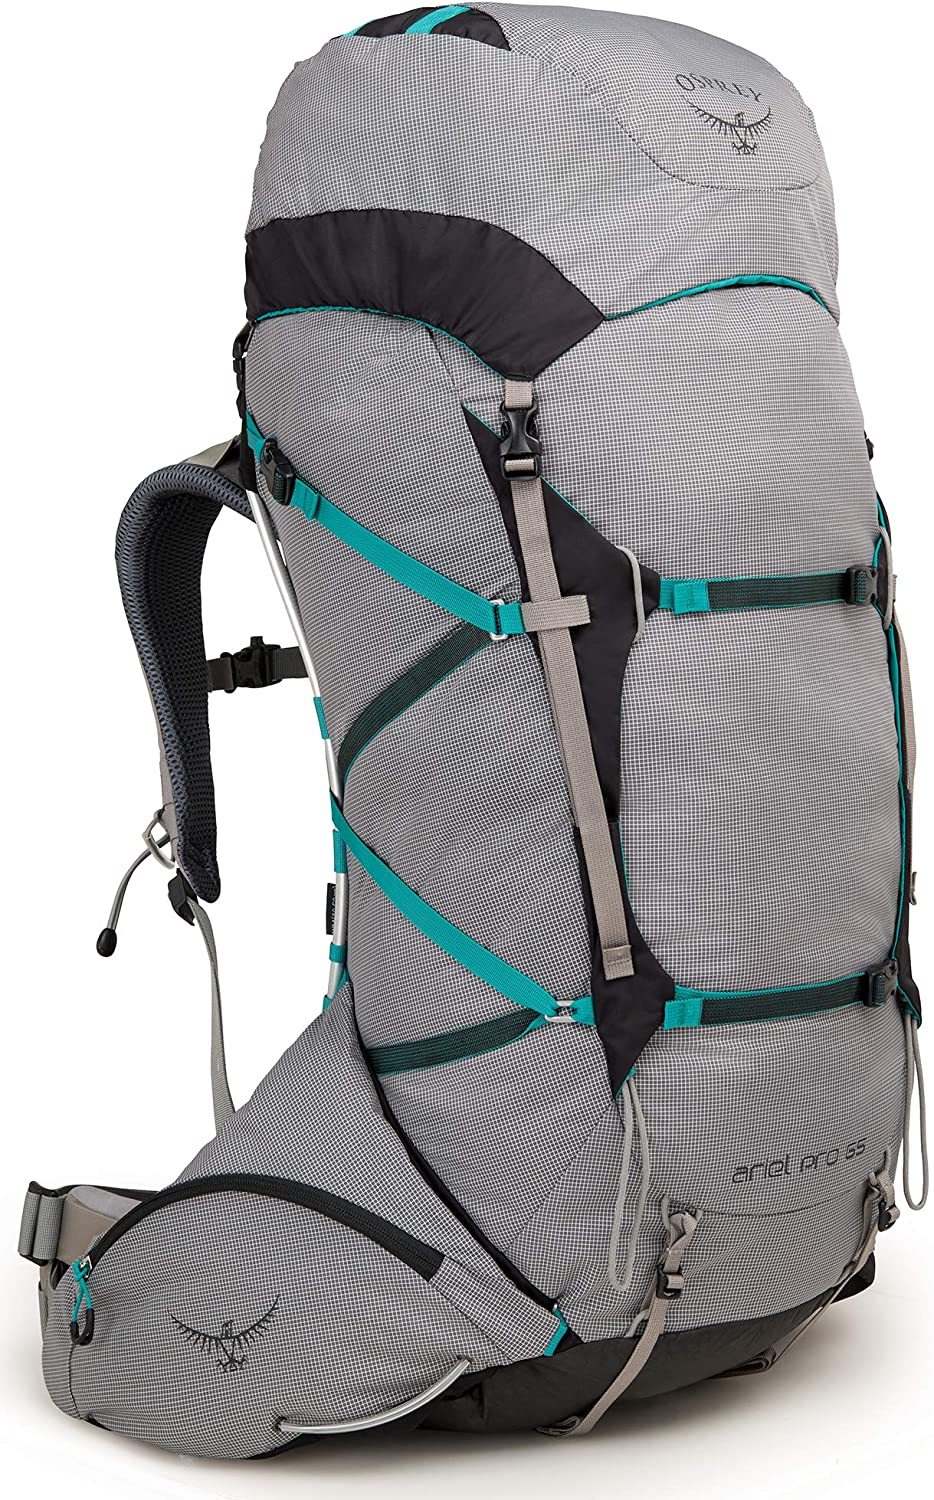 Osprey Ariel San Diego Mall Pro 65 Backpacking Women's Backpack Colorado Springs Mall